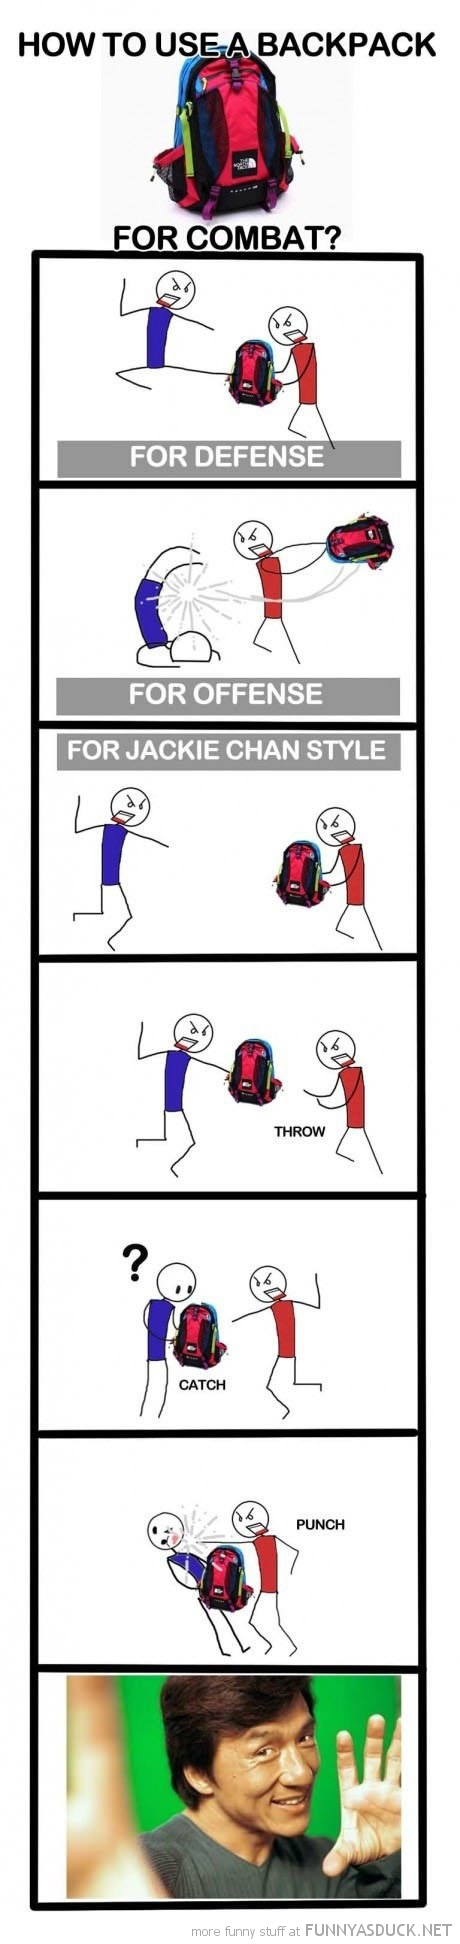 how to use backpack for combat funny pics pictures pic picture image photo images photos lol